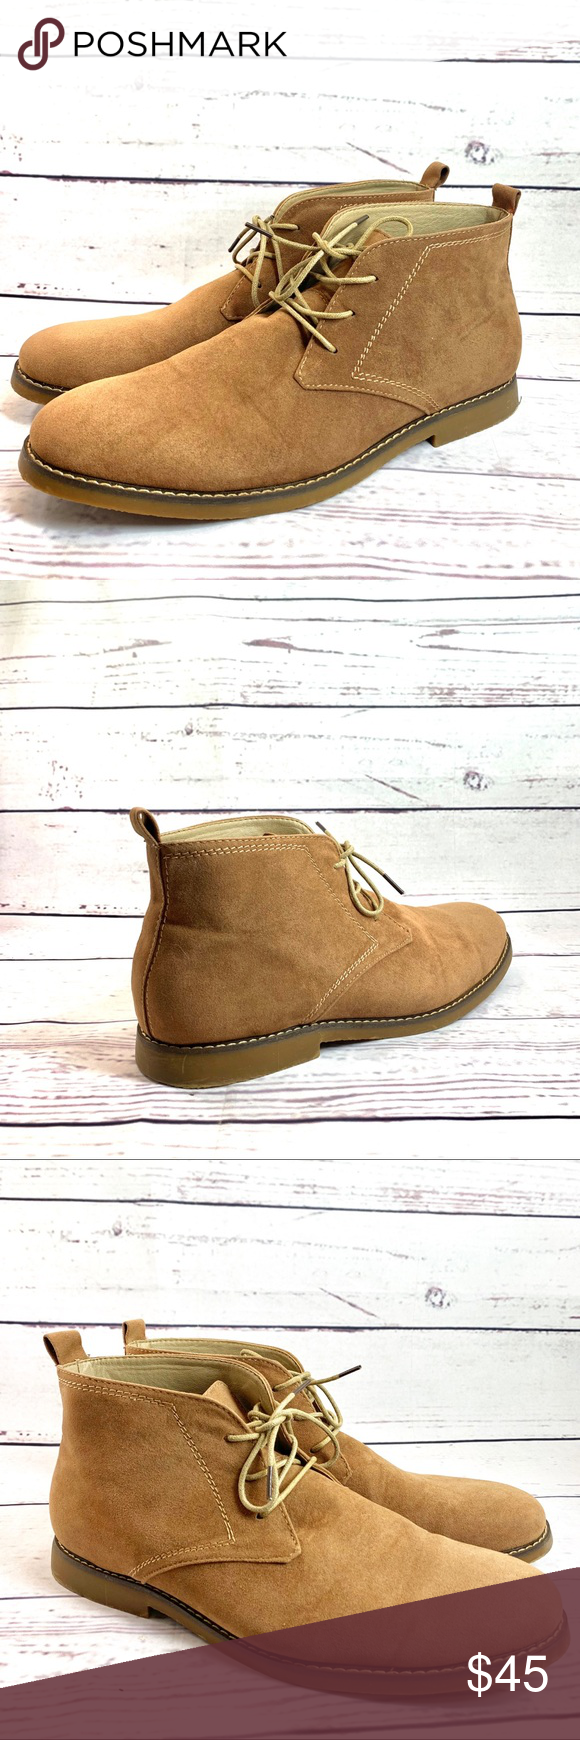 1196e39d3 Miko Lotti Men's Lace up Ankle Chukka BOOTS Condition: Pre- Owned in  excellent condition Lotti Bf1302 Men's Lace up Casual Fashion Ankle Chukka  boots.